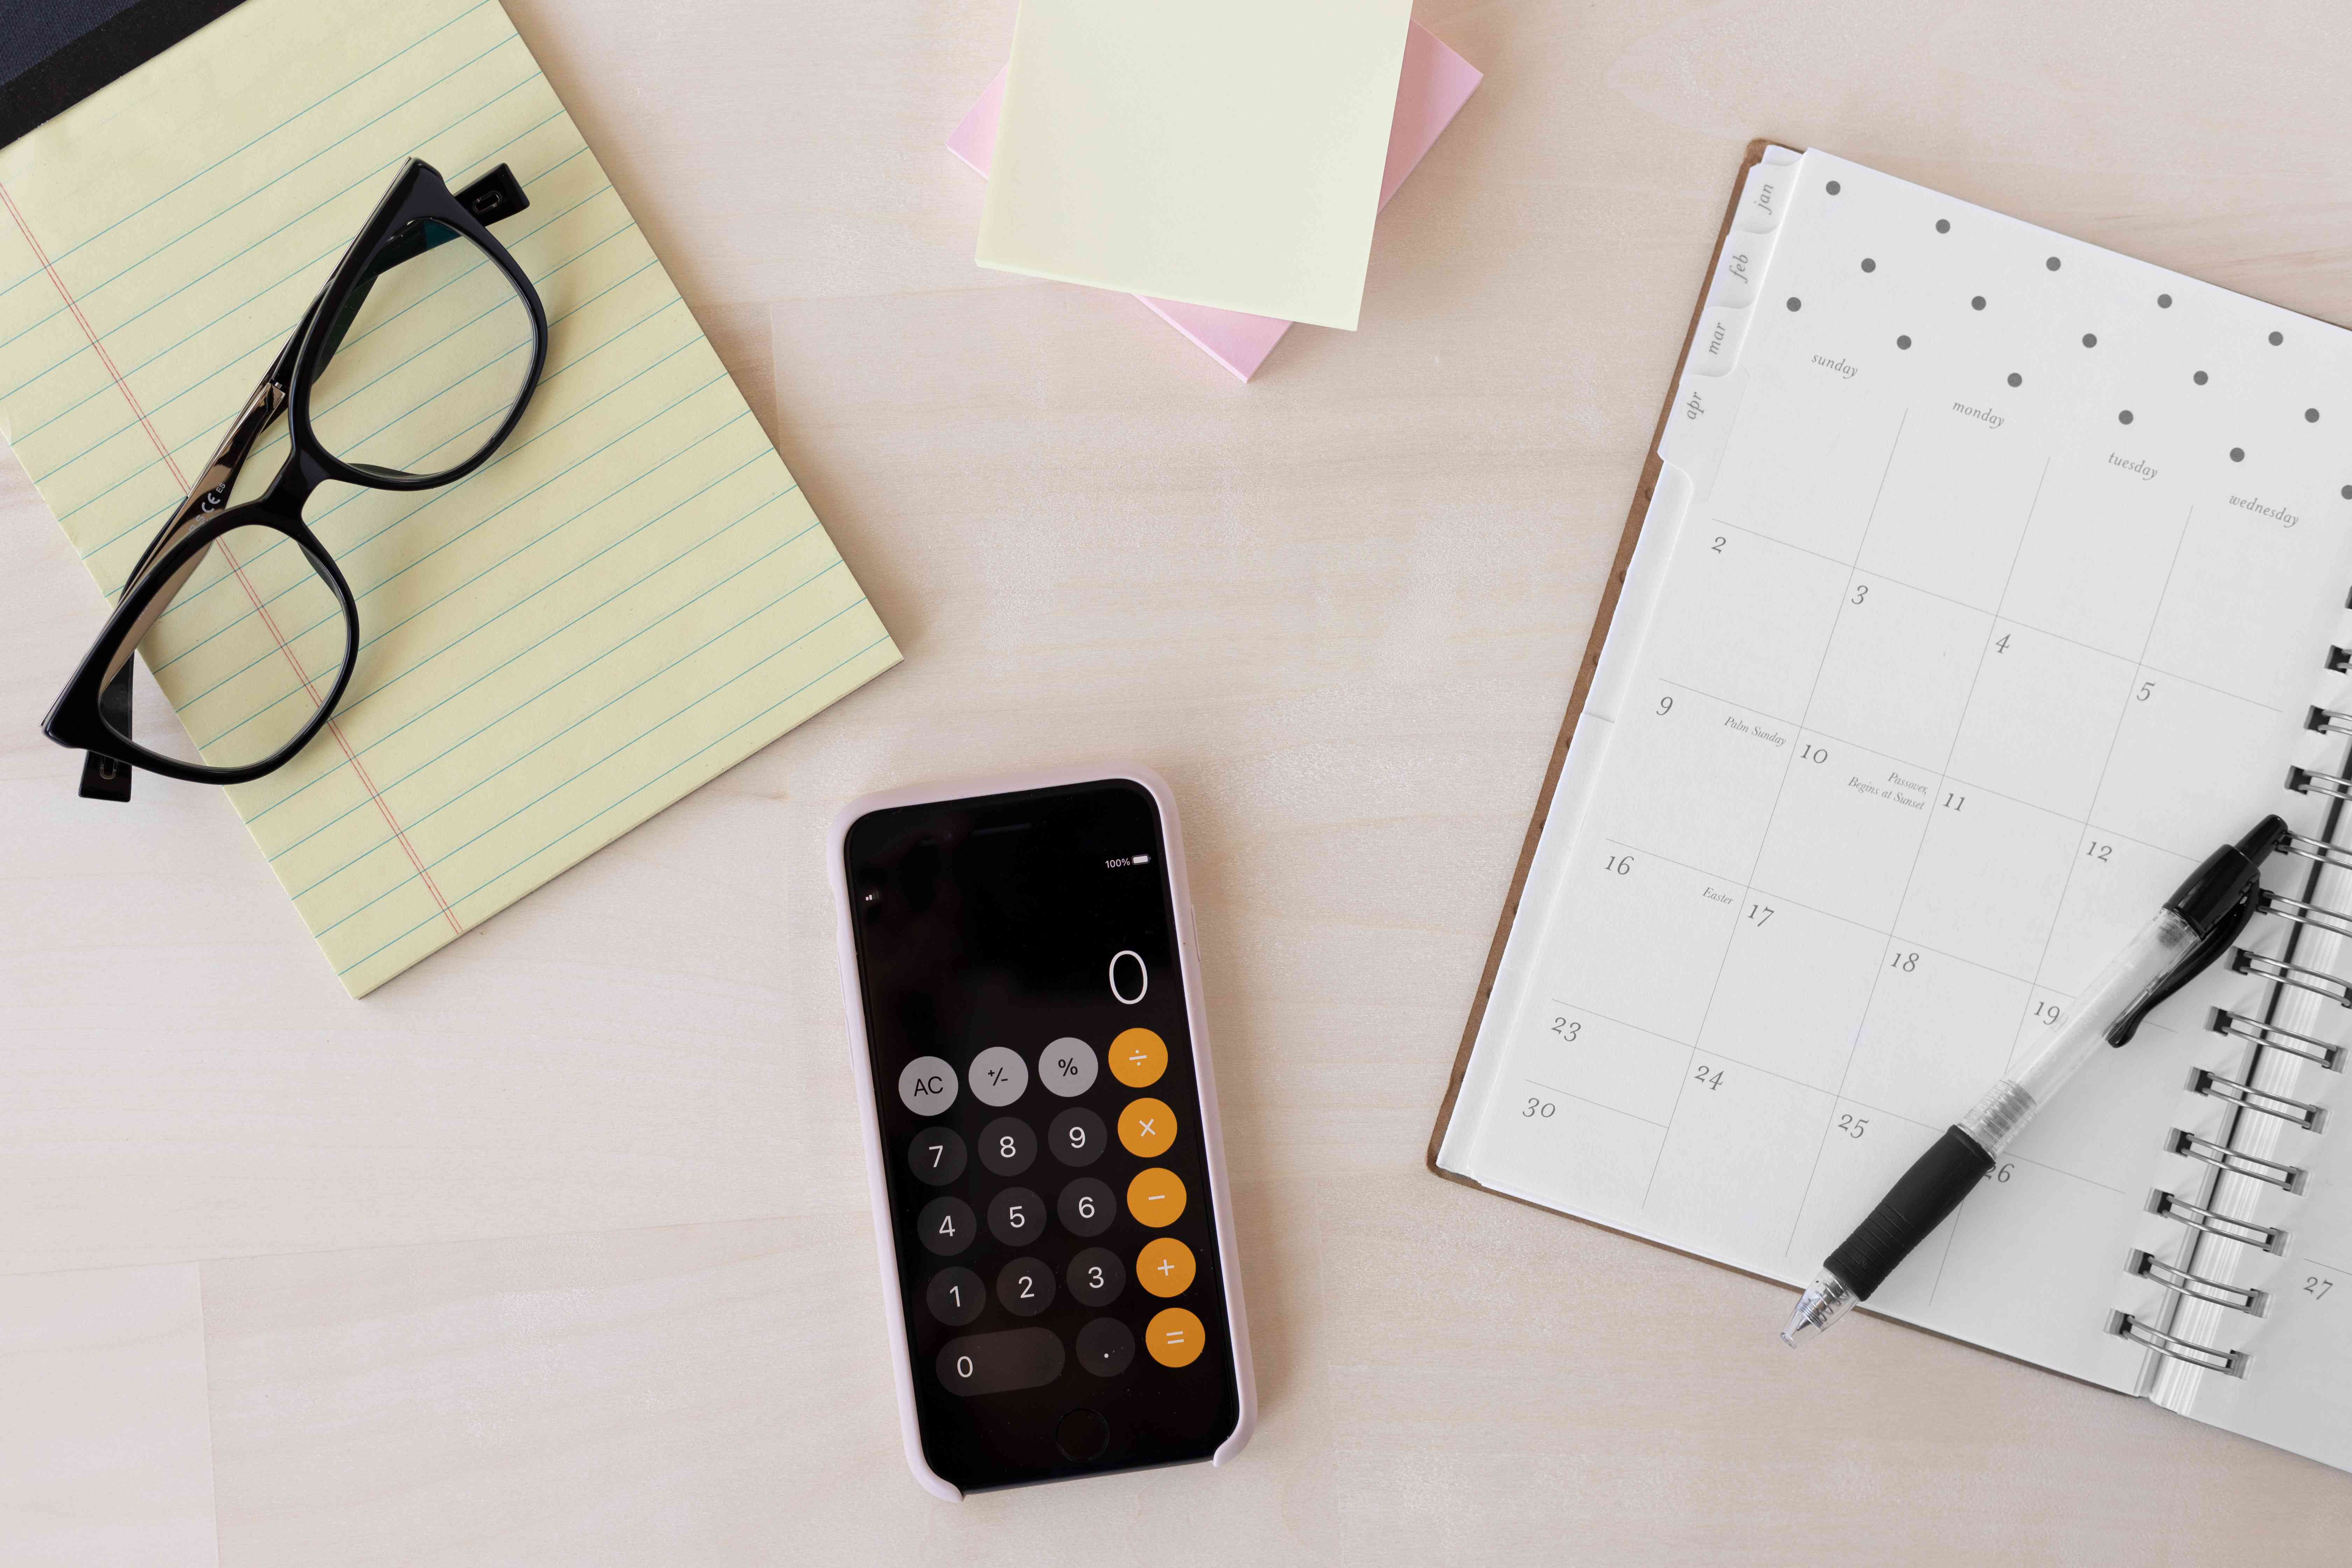 Glasses on notepad with open calendar organizer, phone calculator and sticky notes